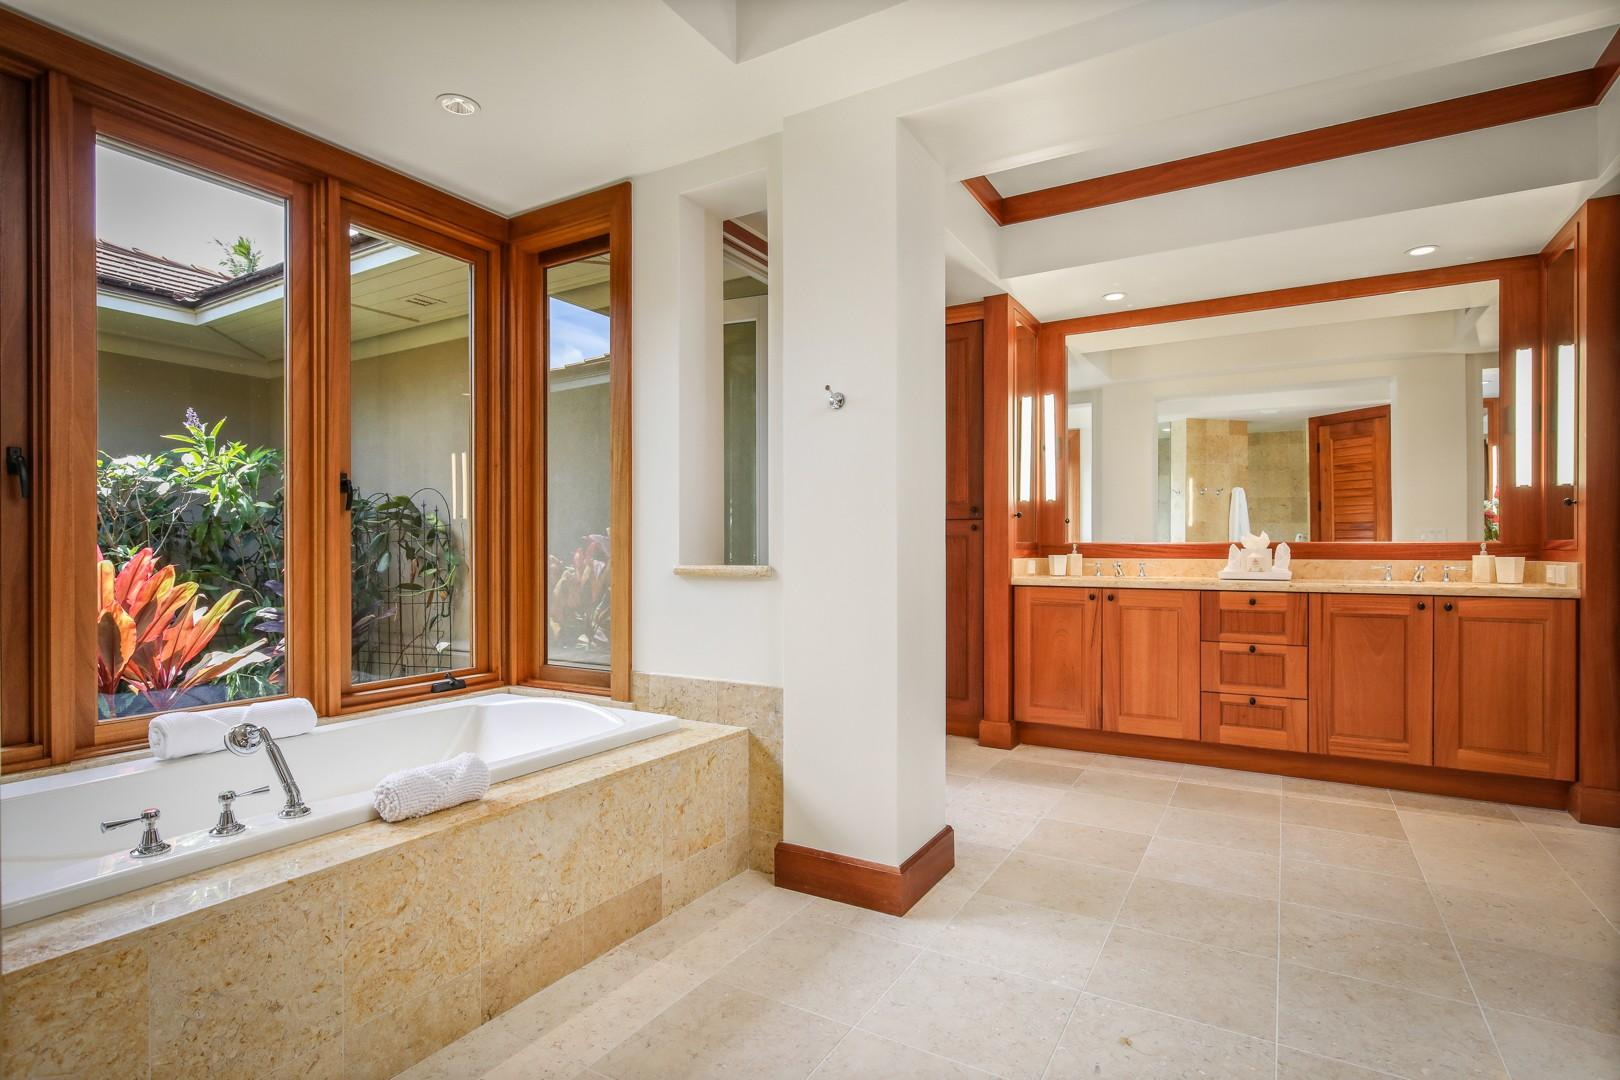 Master bath with oversized soaking tub, dual vanity, walk-in shower, and outdoor shower garden.